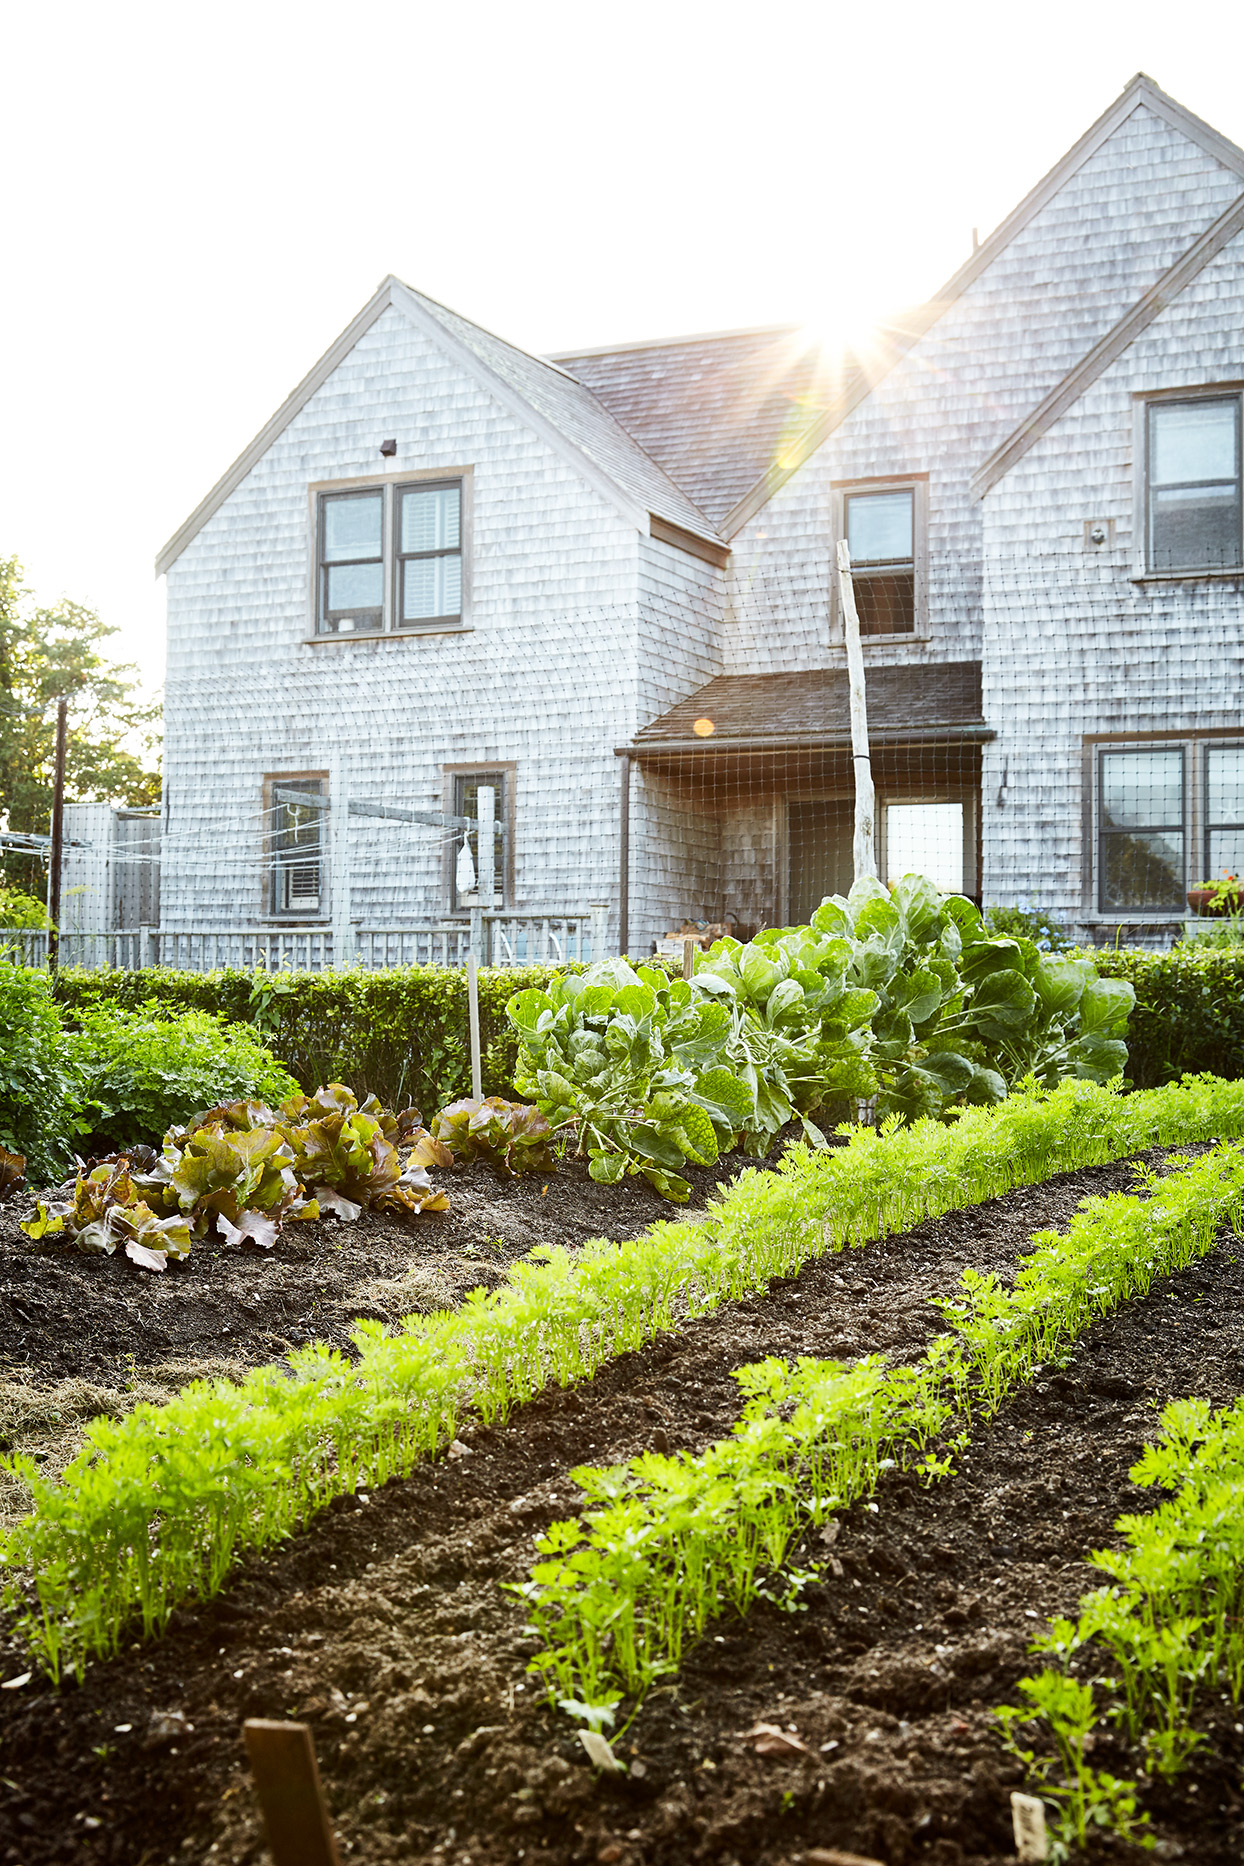 vegetable garden planted in rows by farm house